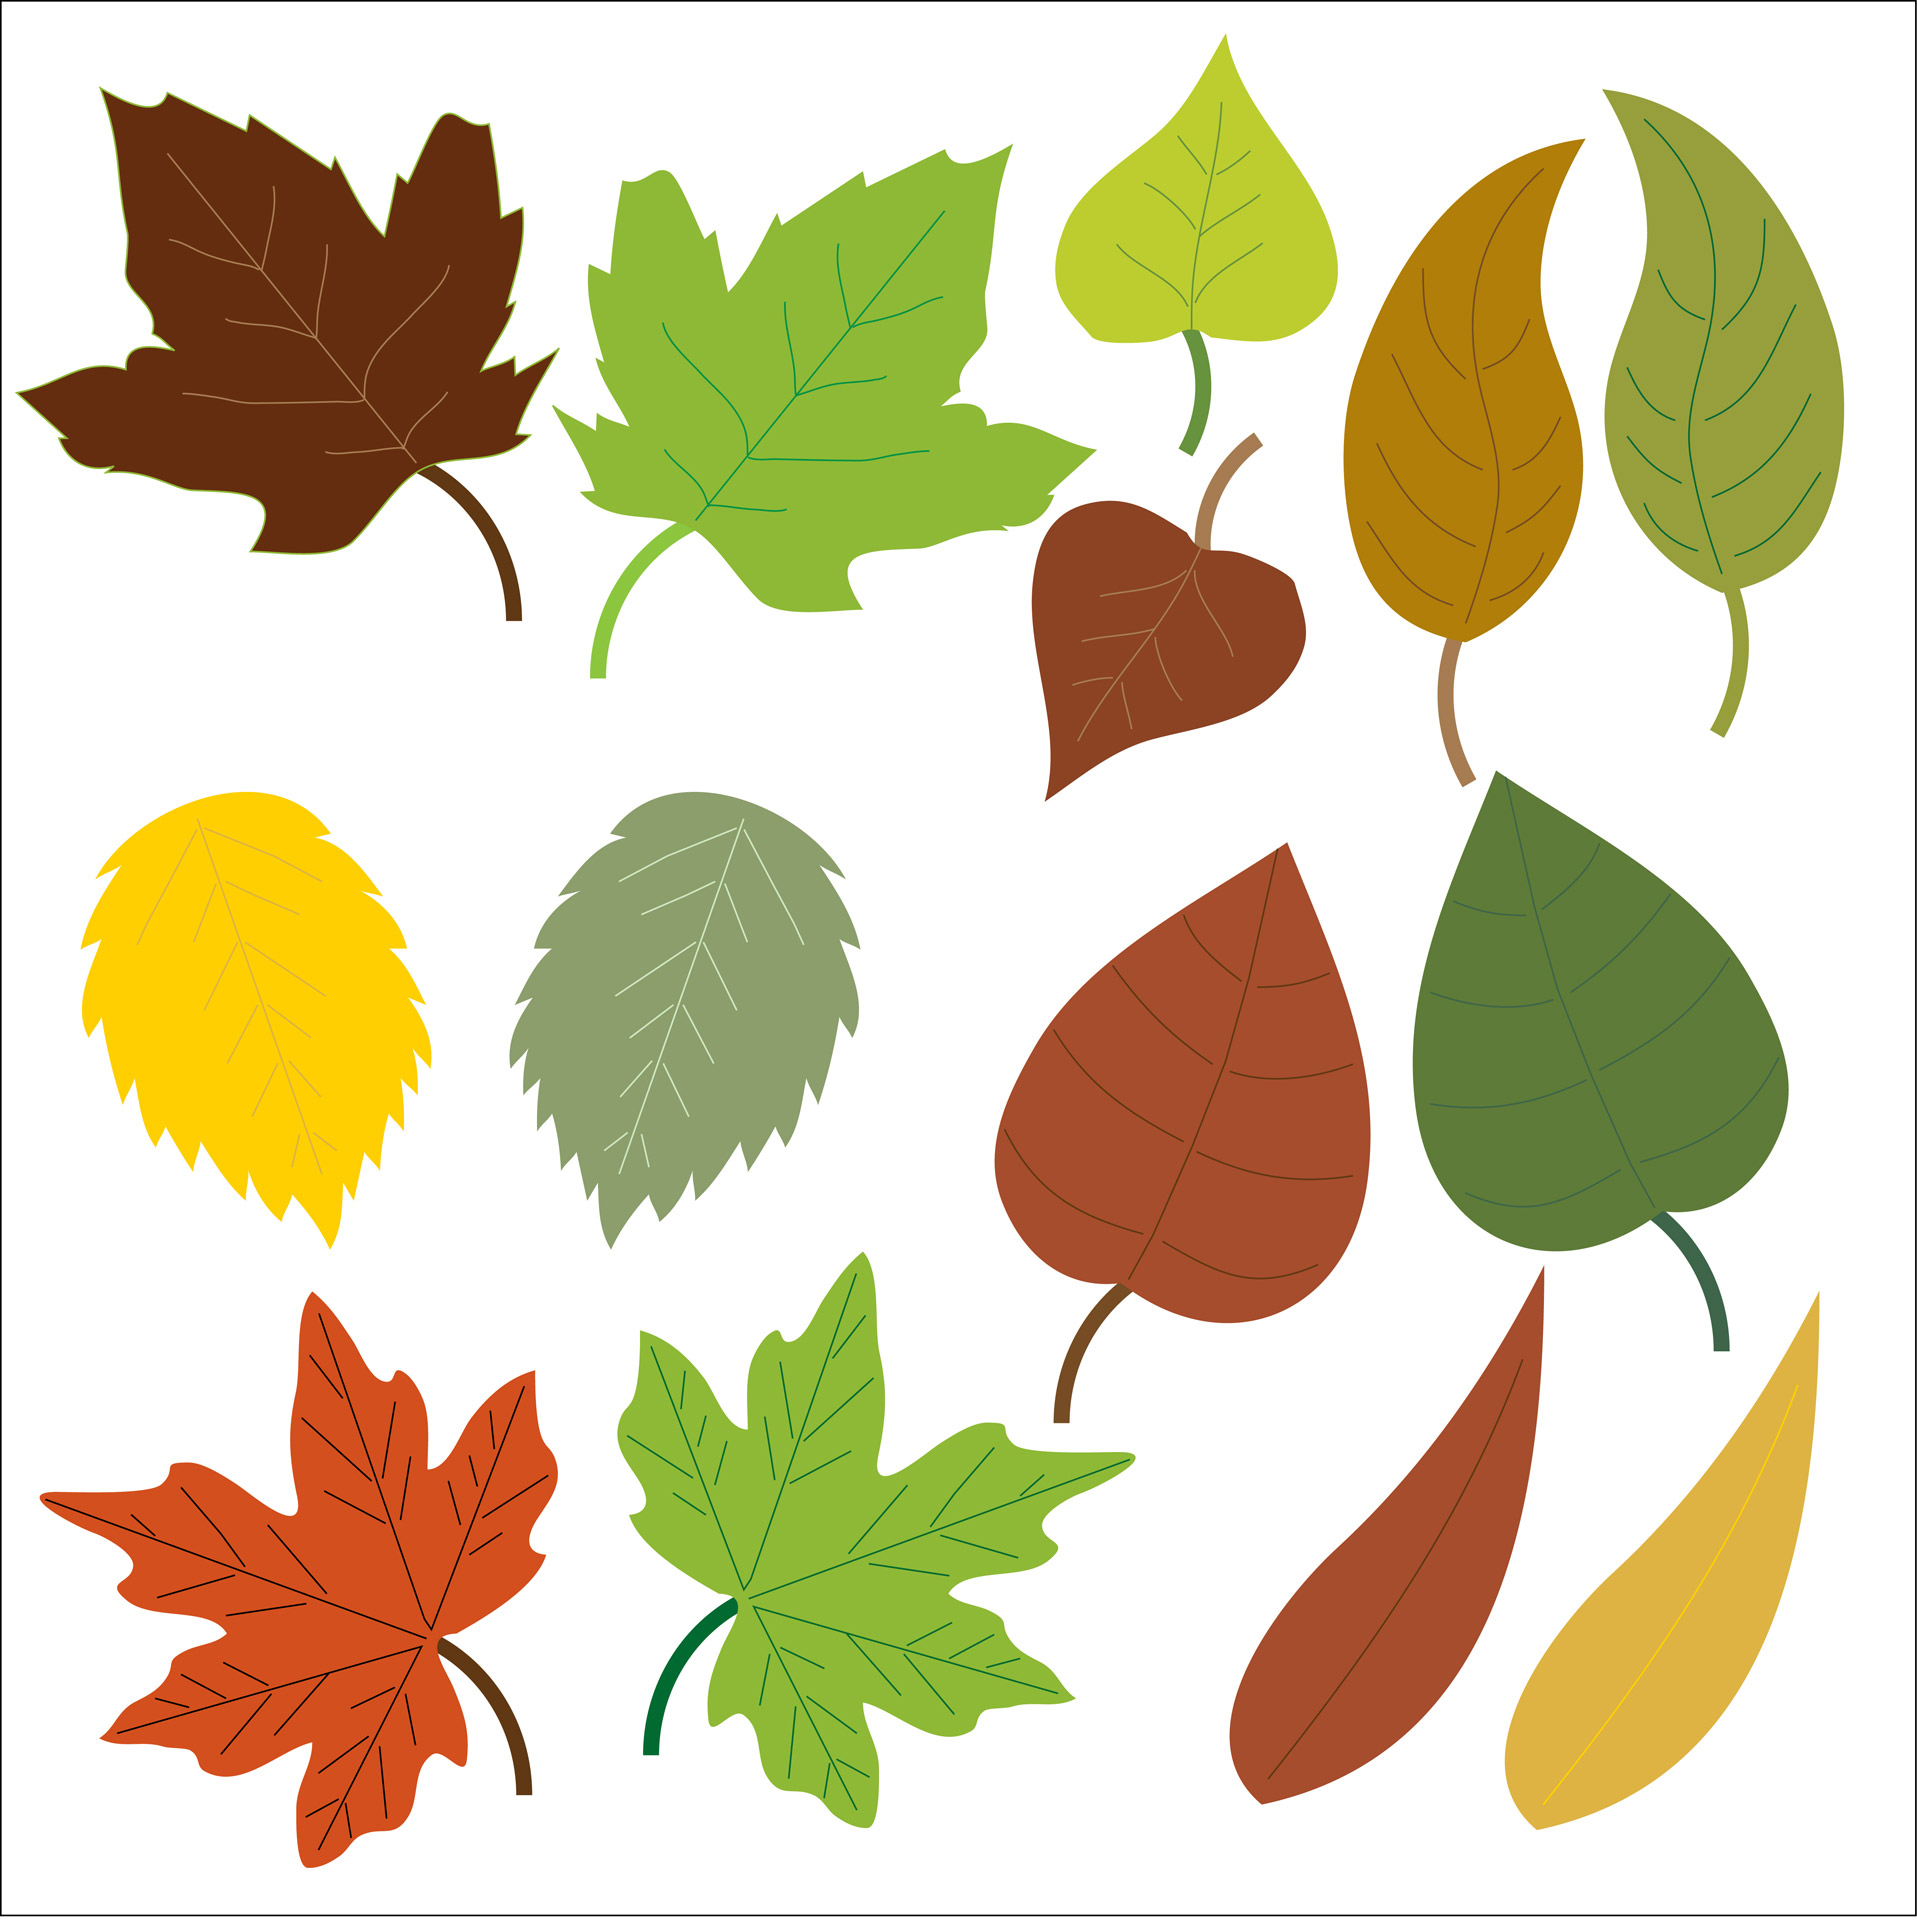 Free stock photo public. Leaves clipart